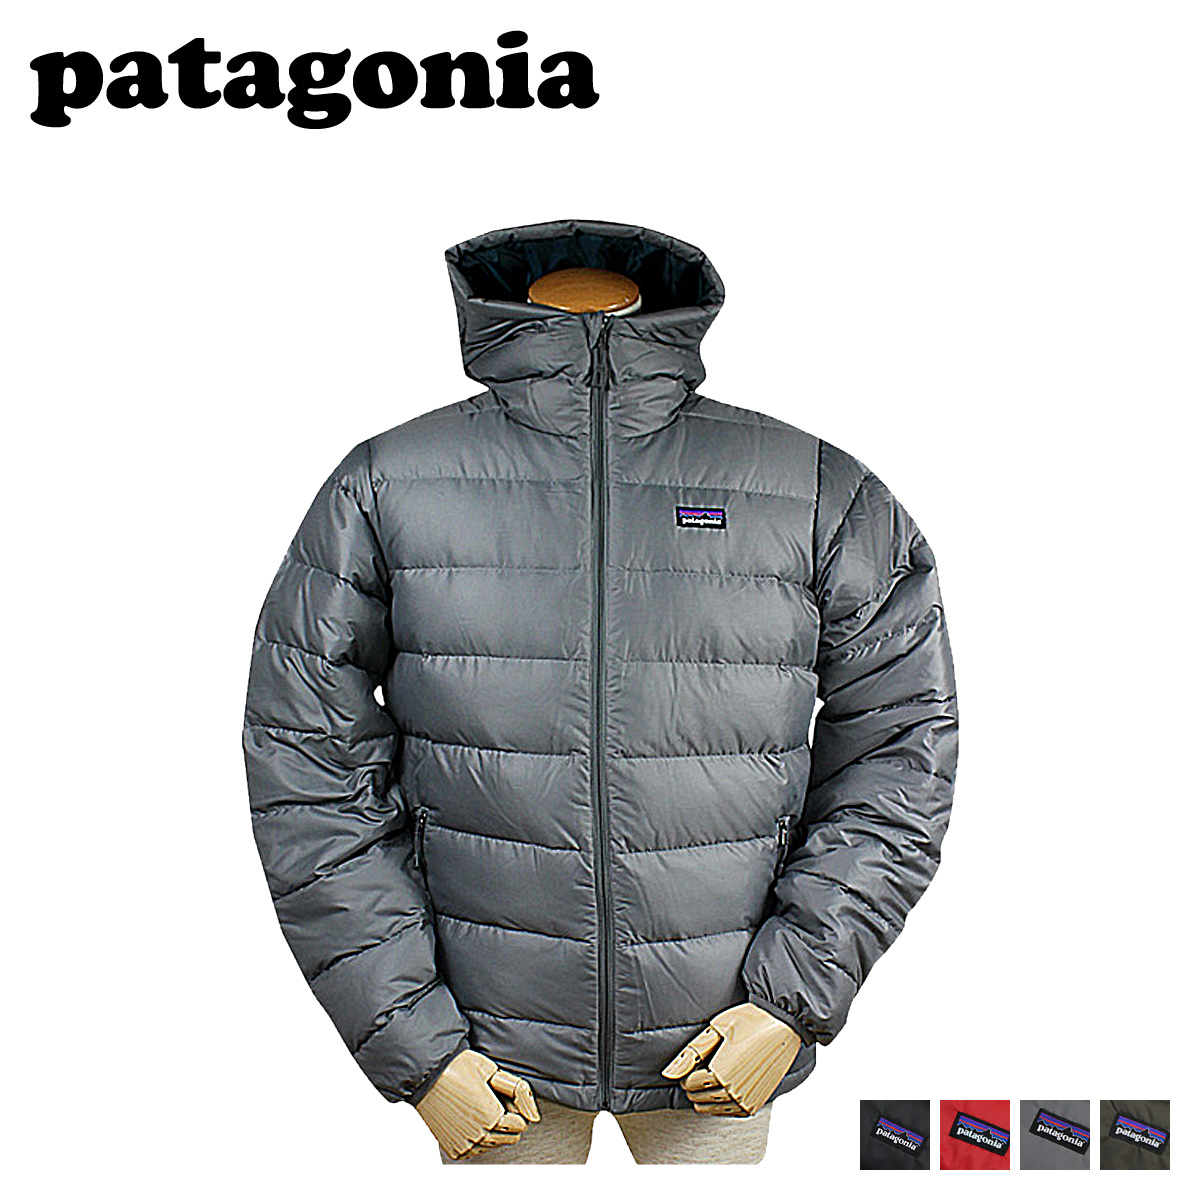 Whats Up Sports Patagonia Patagonia Down Jacket Mens Hi Loft Down